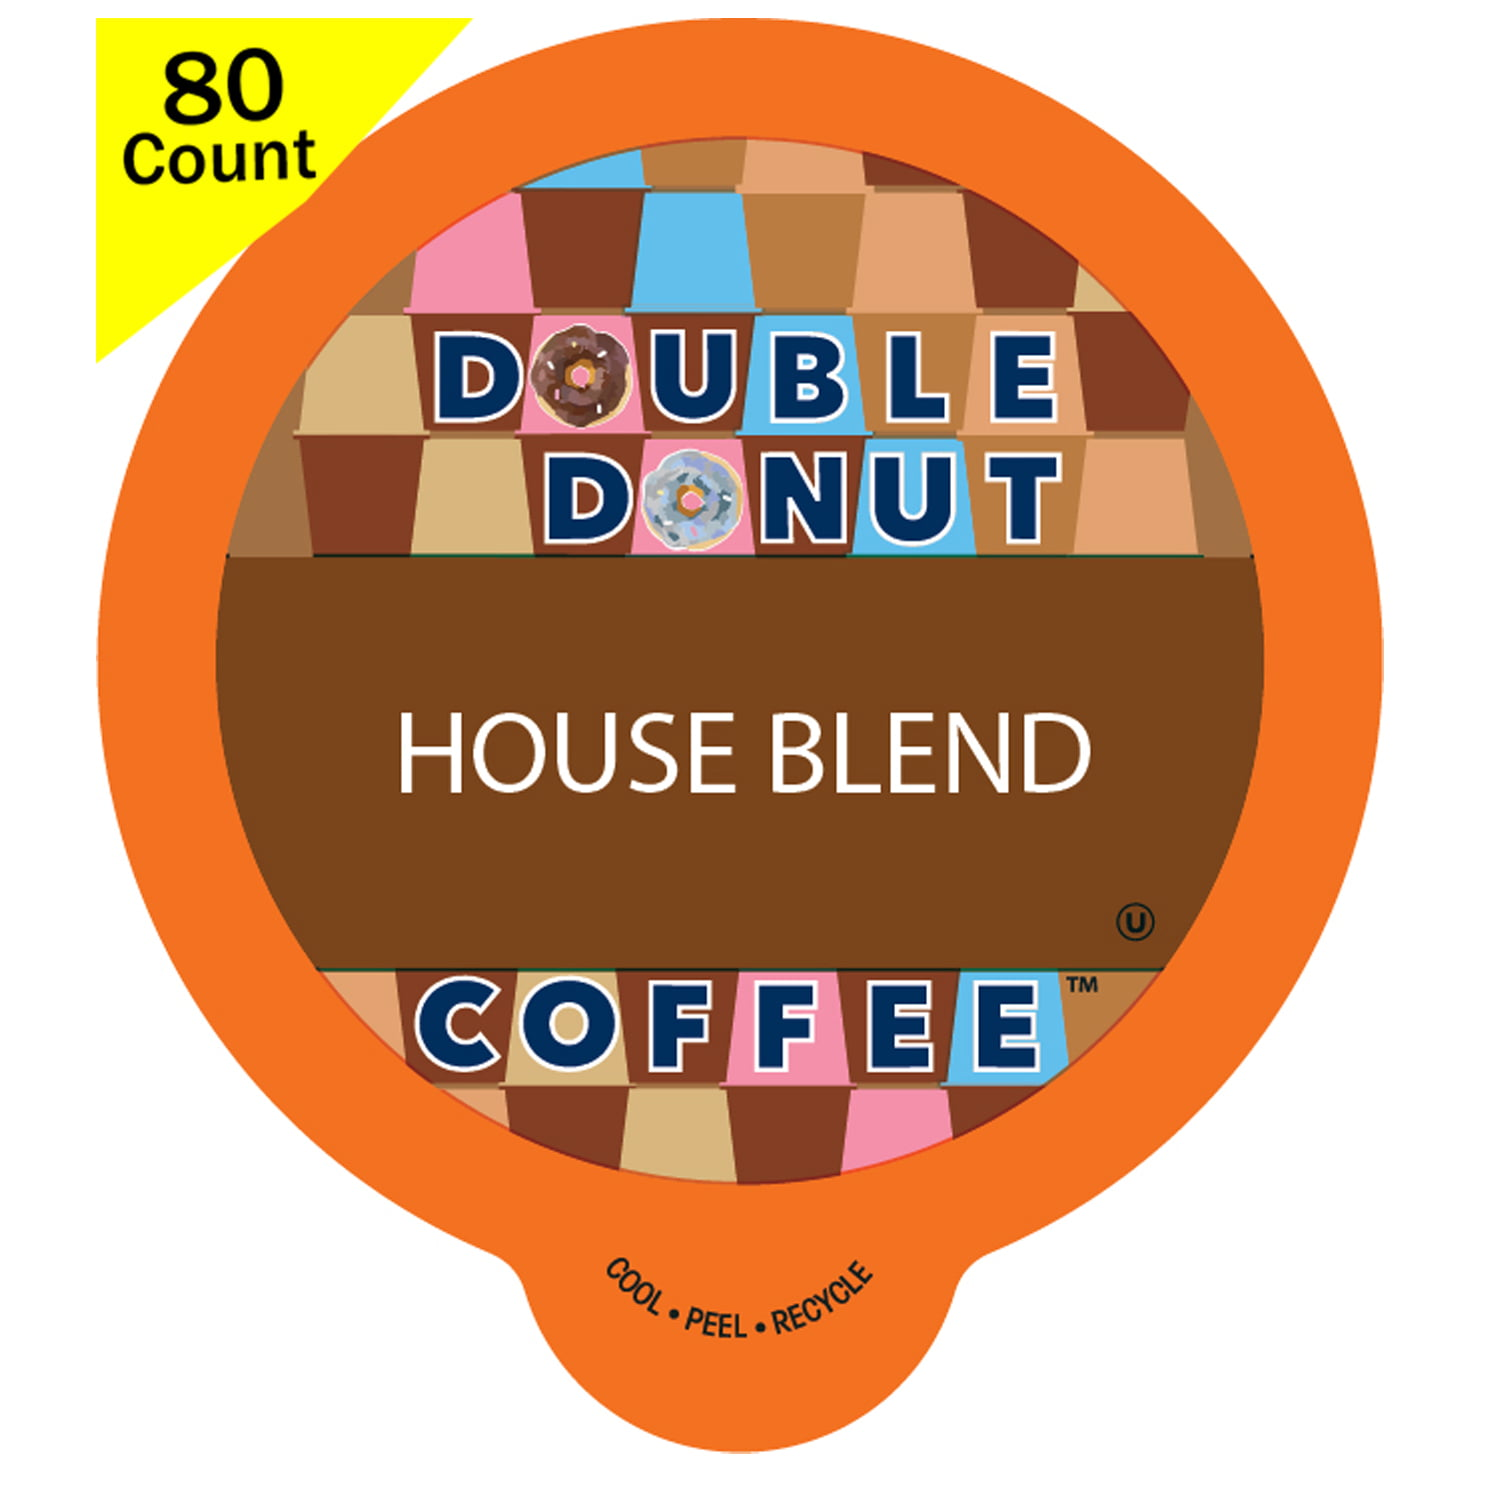 Double Donut House Blend Roast Coffee, in Recyclable Single Serve Cups for Keurig K-Cup Brewers, 80 Count - Walmart.com